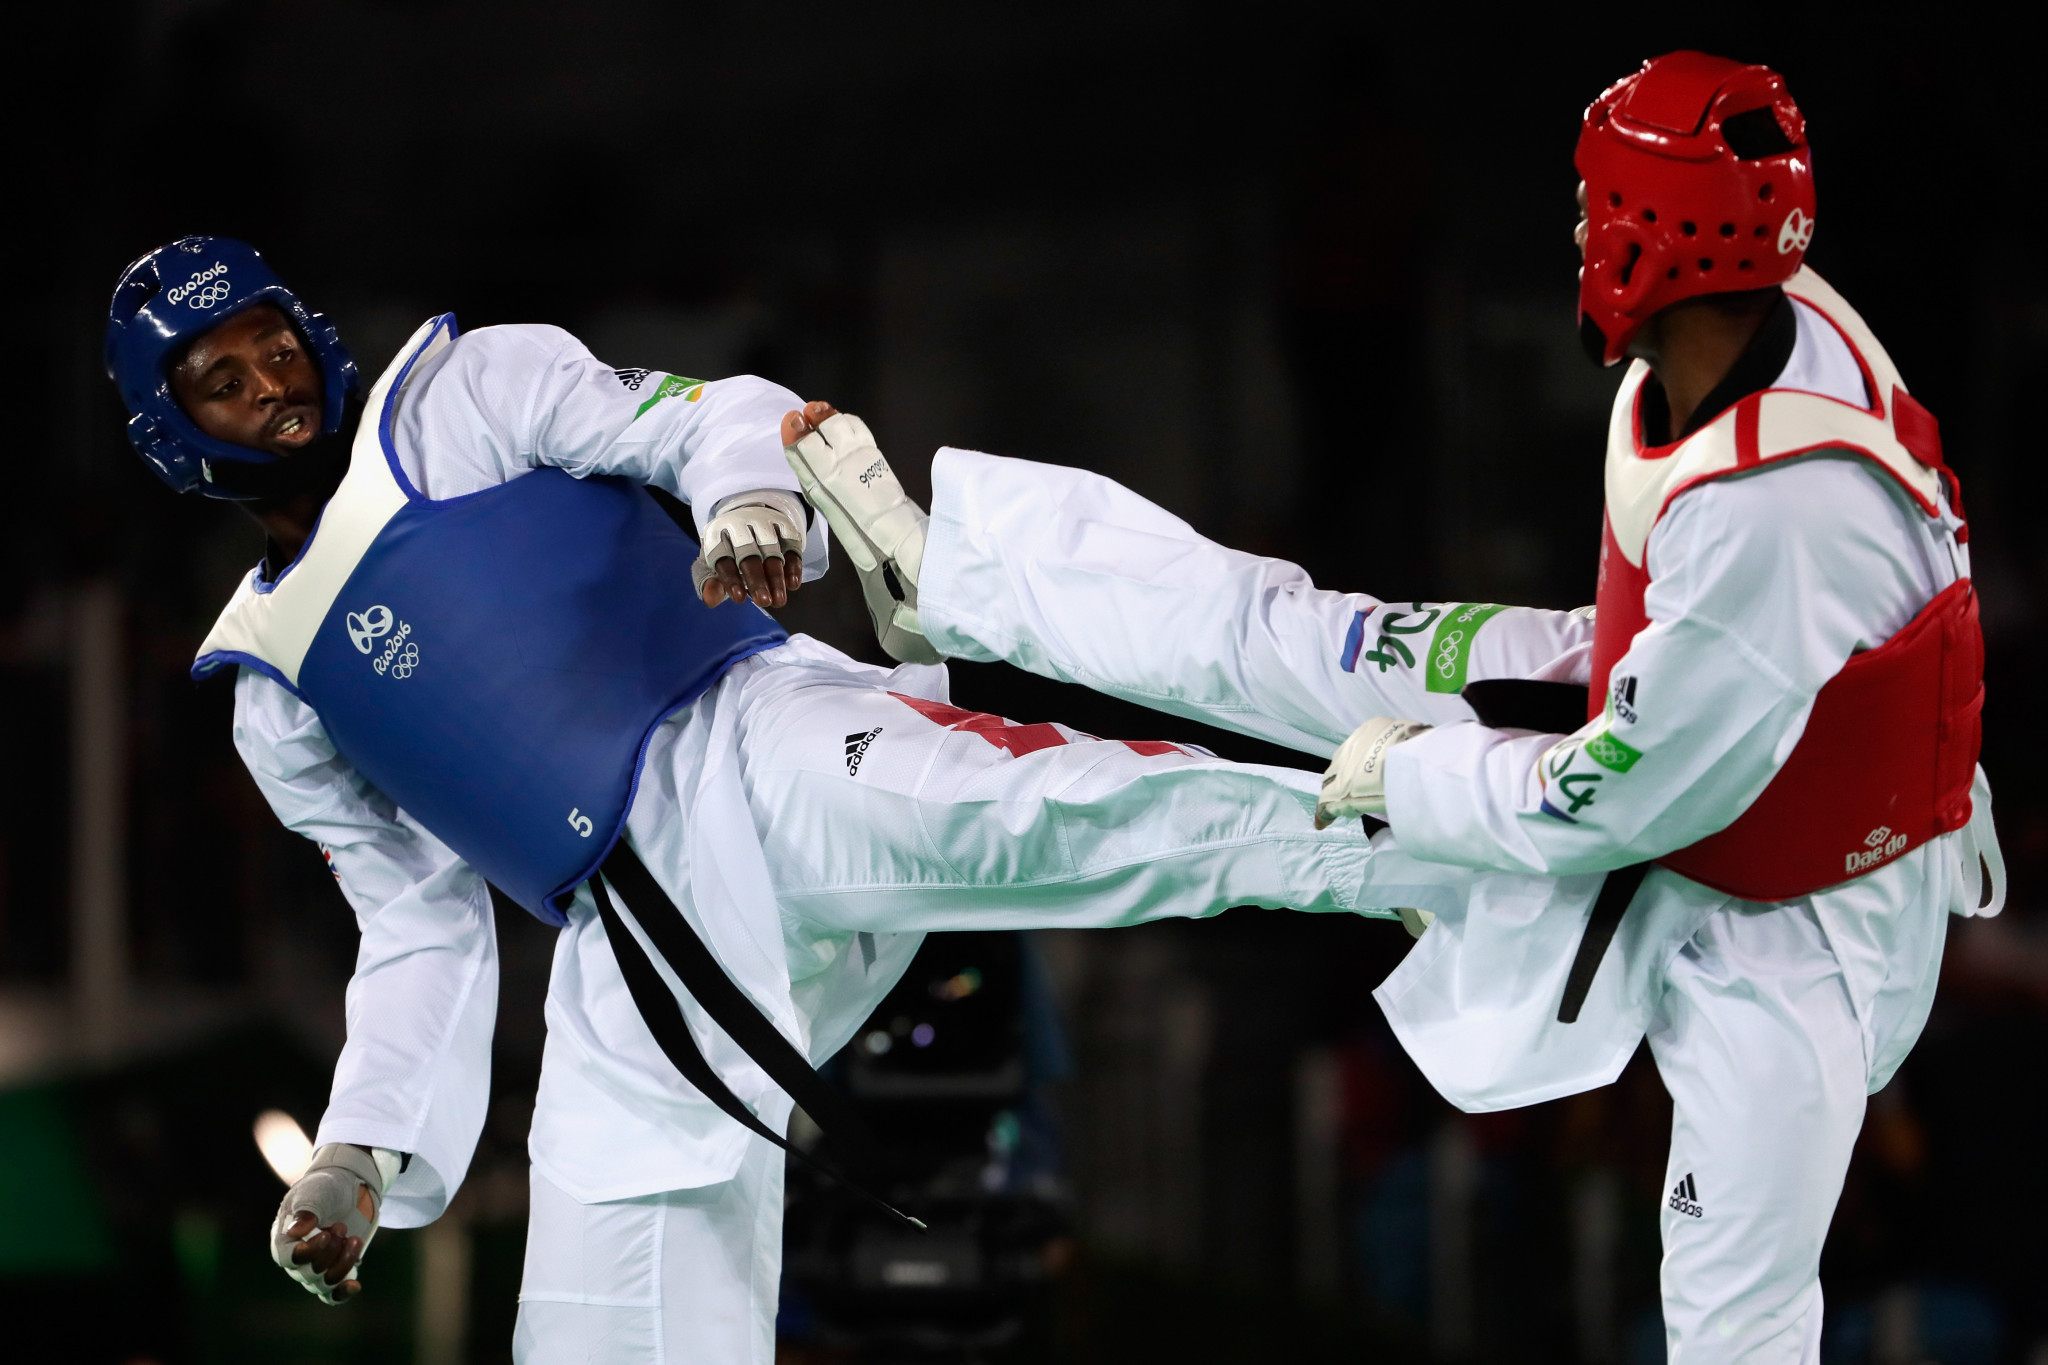 Mahama Cho was one of two gold medallists for Great Britain on the last day of the World Taekwondo President's Cup for Europe region in Antalya ©Getty Images